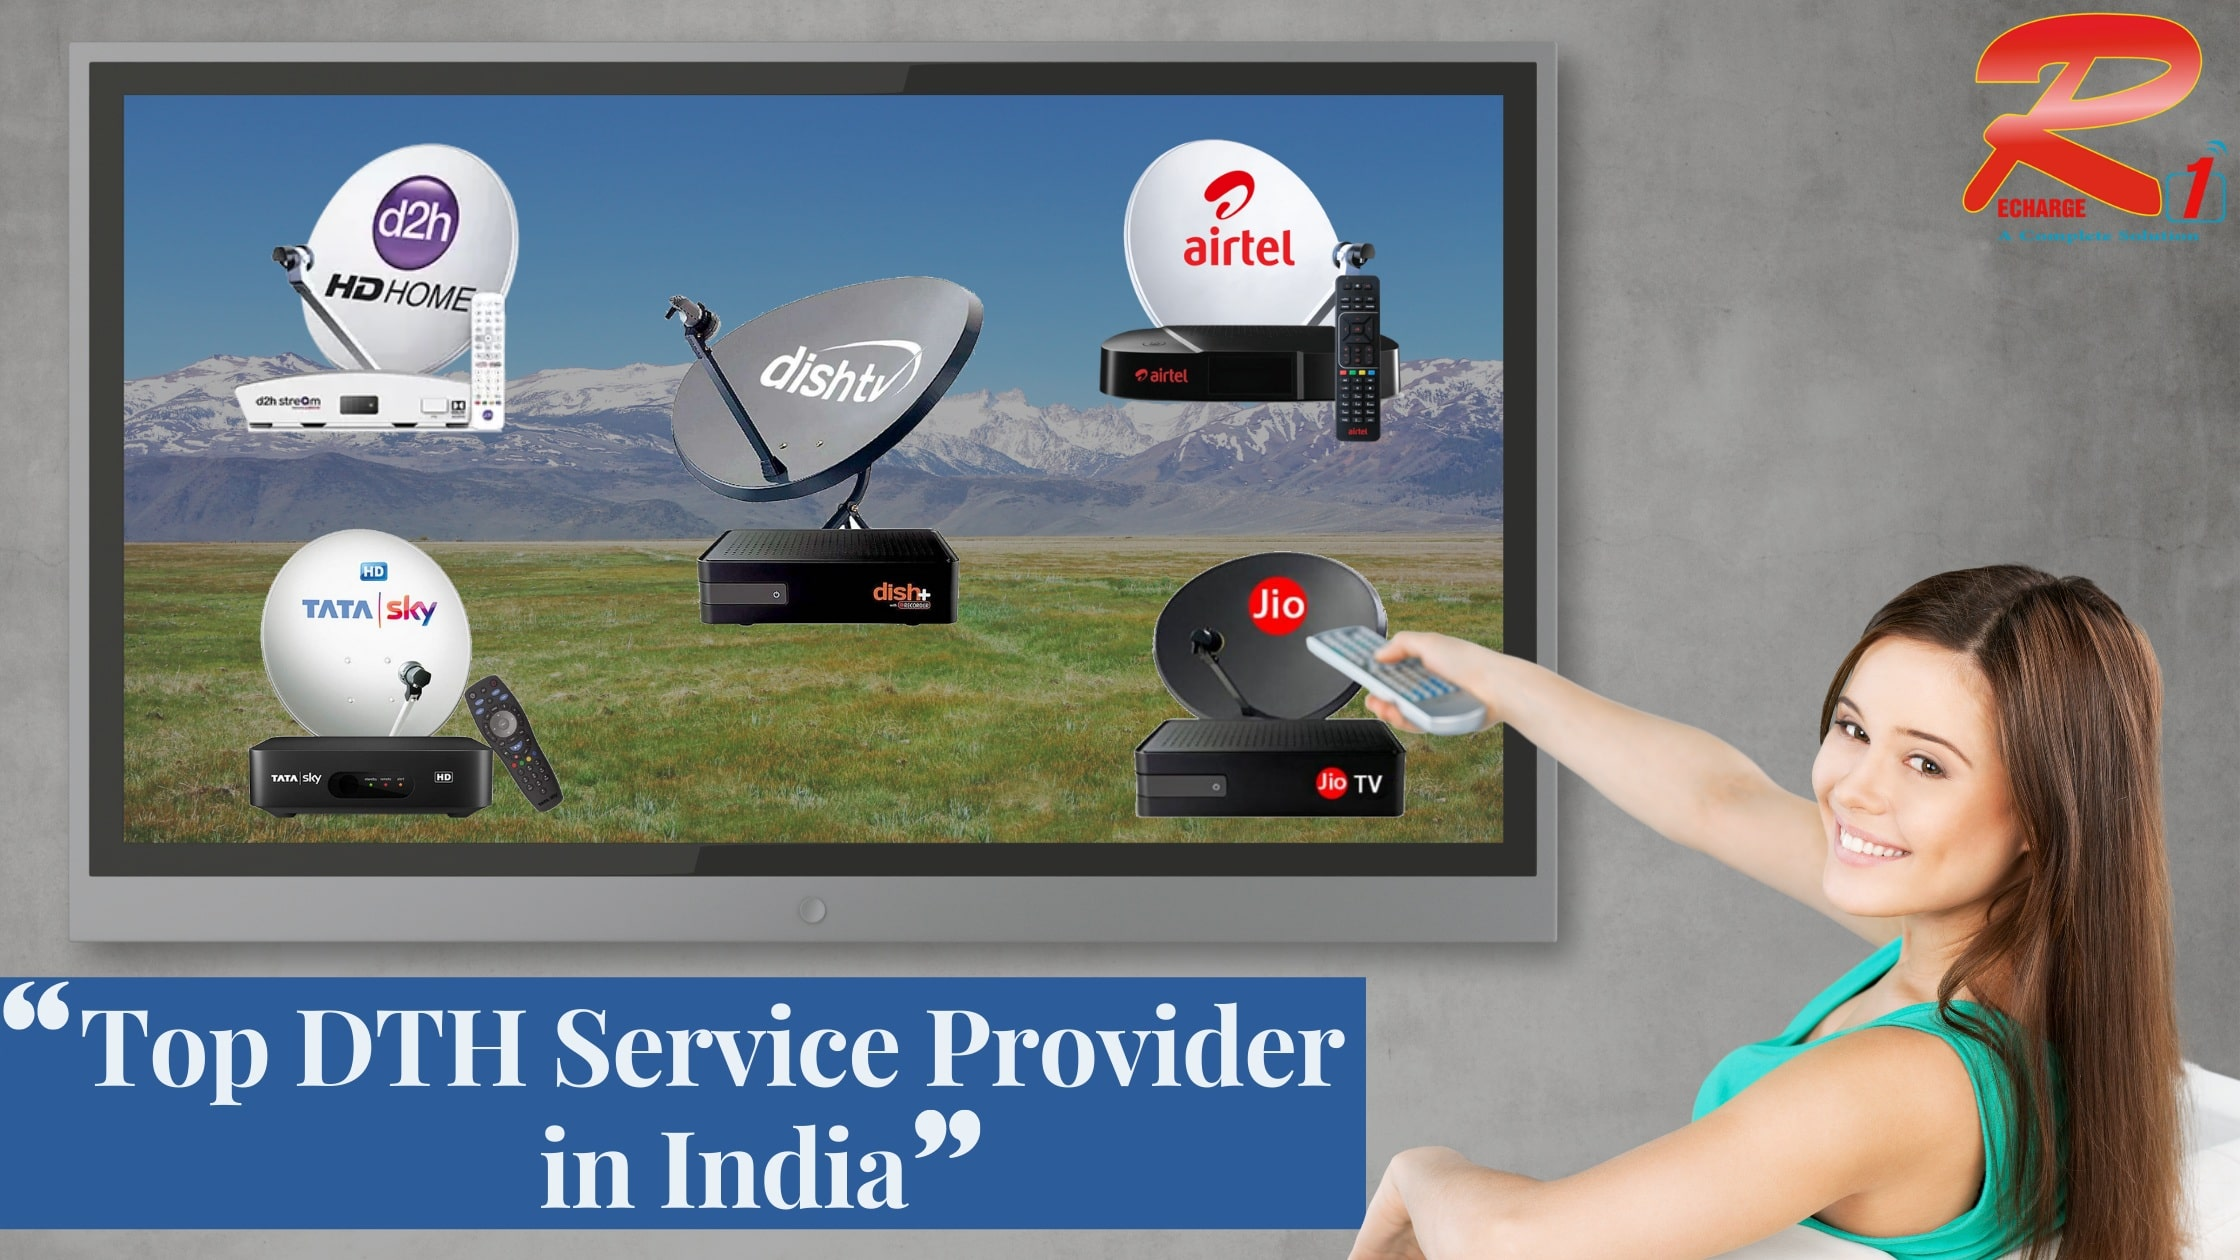 5 Top DTH Service Providers in India